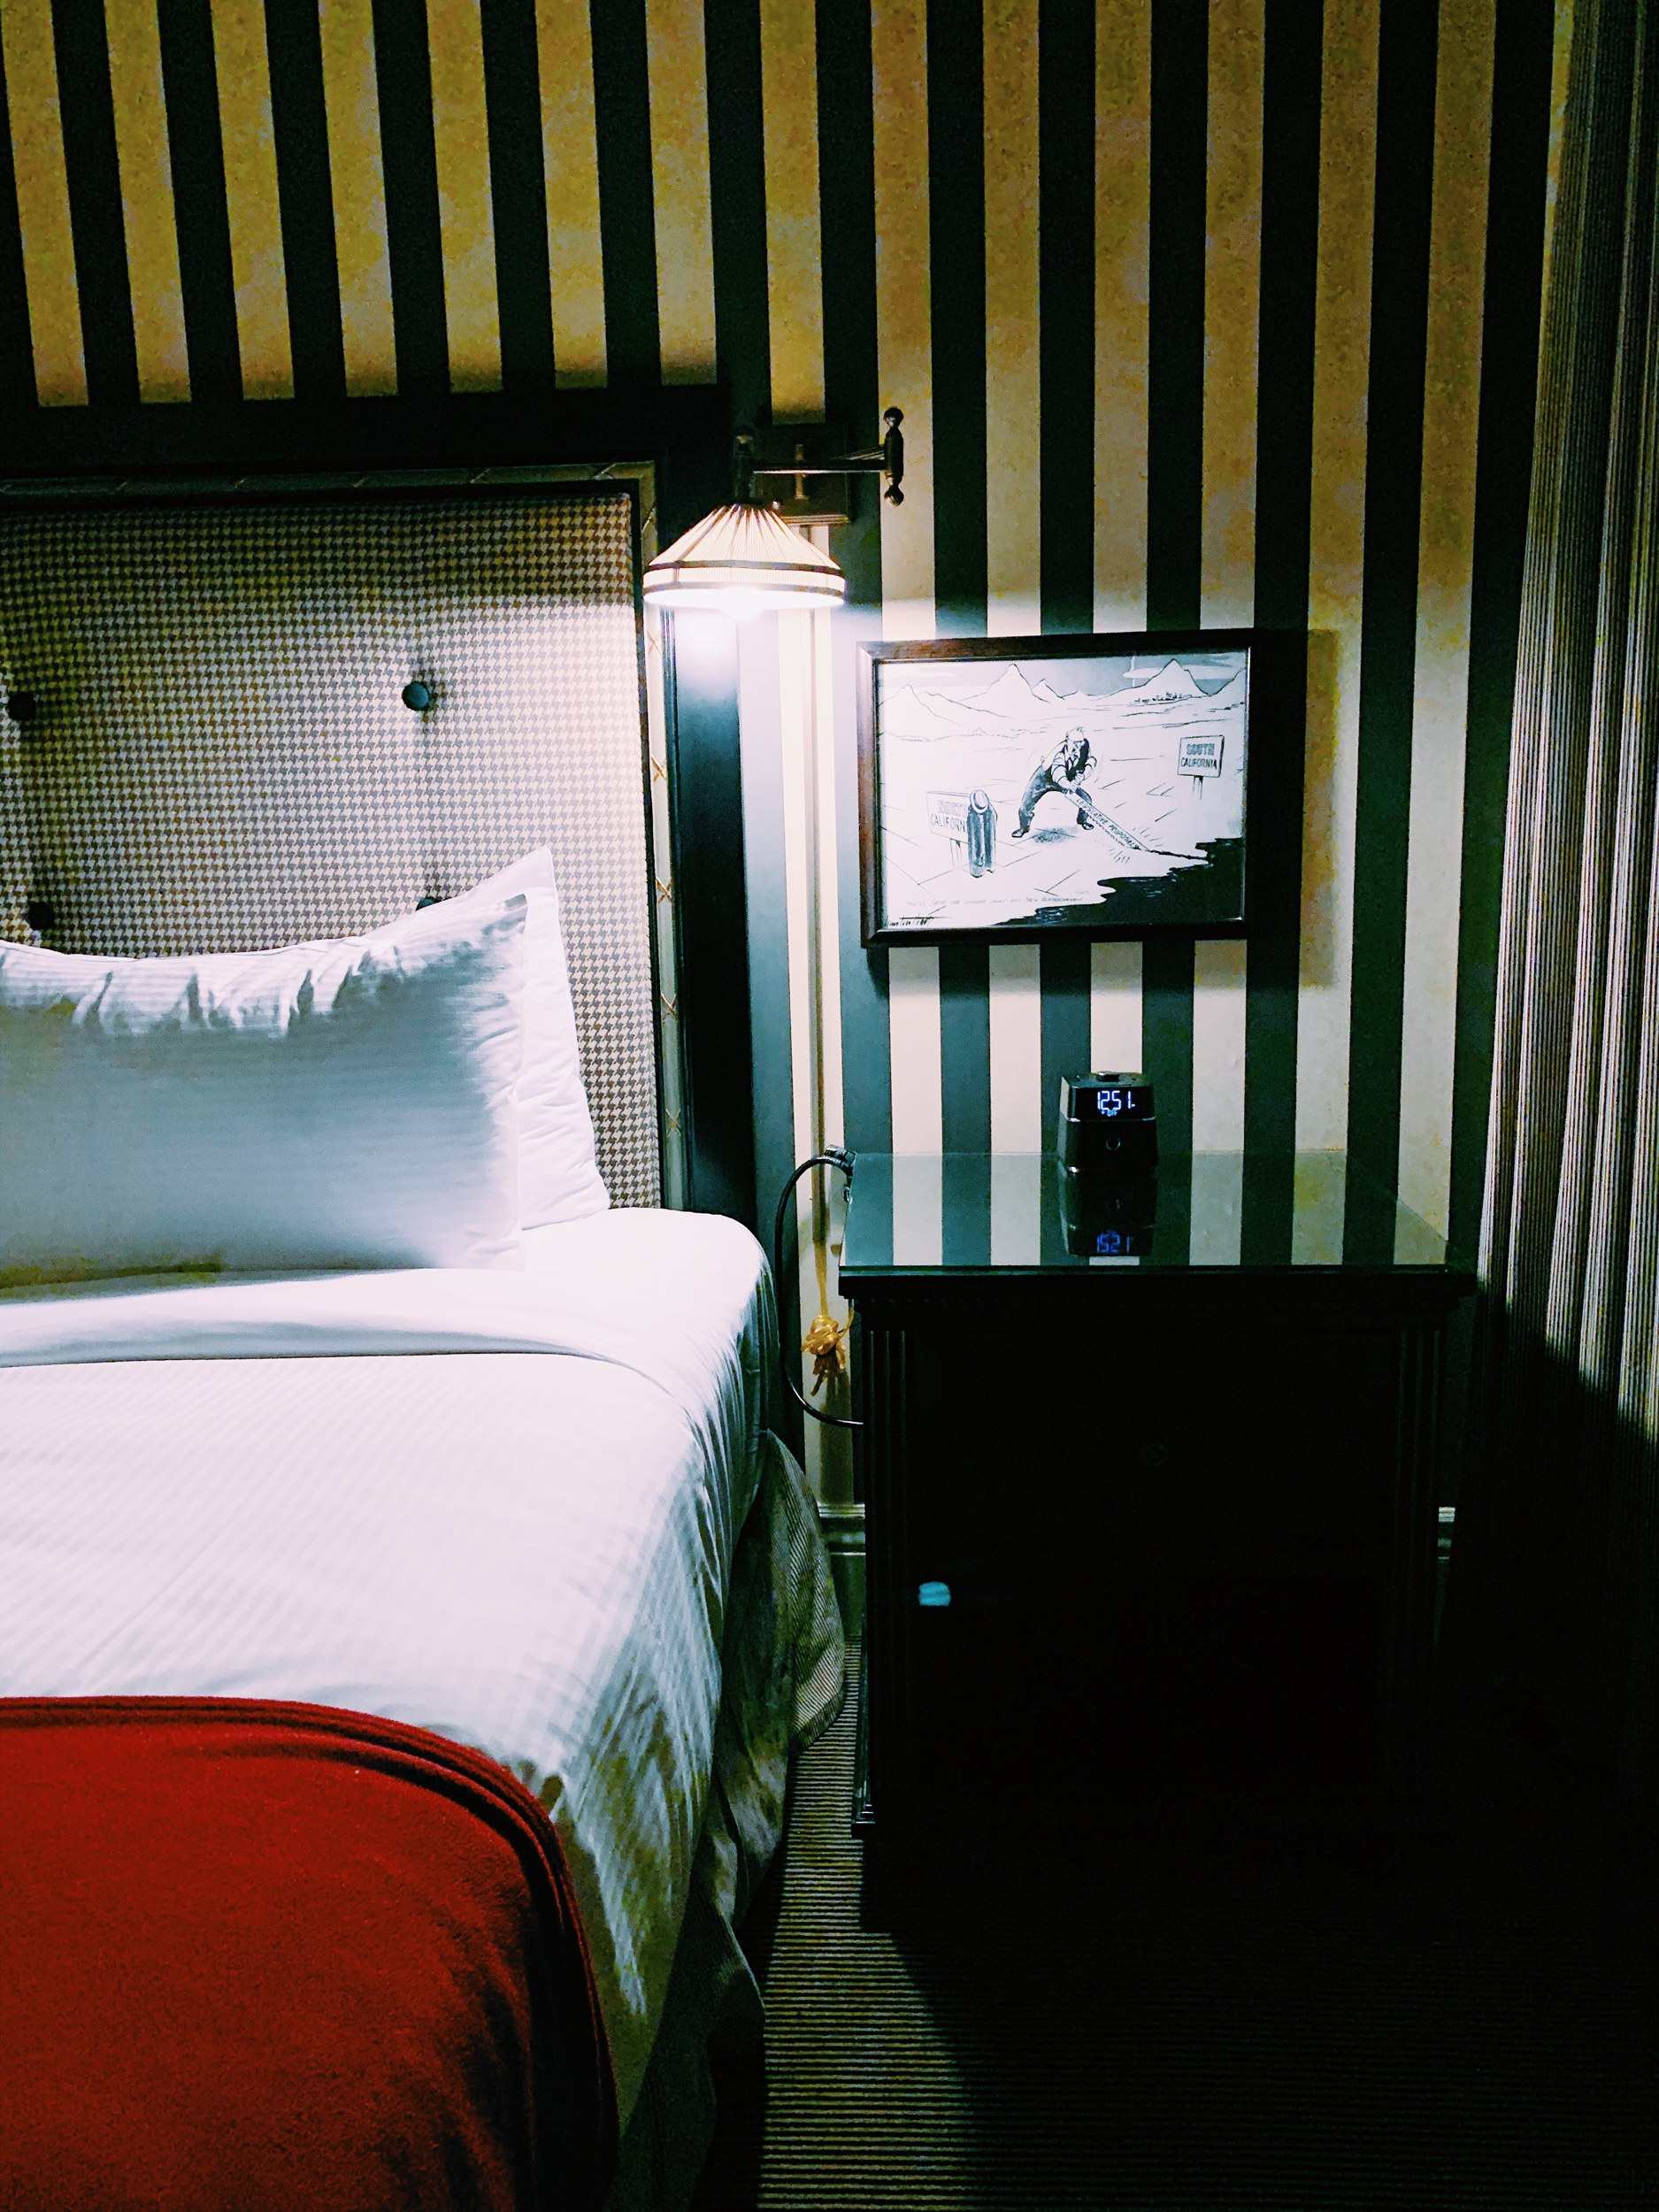 Three Heel Clicks - A Overnight Staycation at the Citizen Hotel in Sacramento